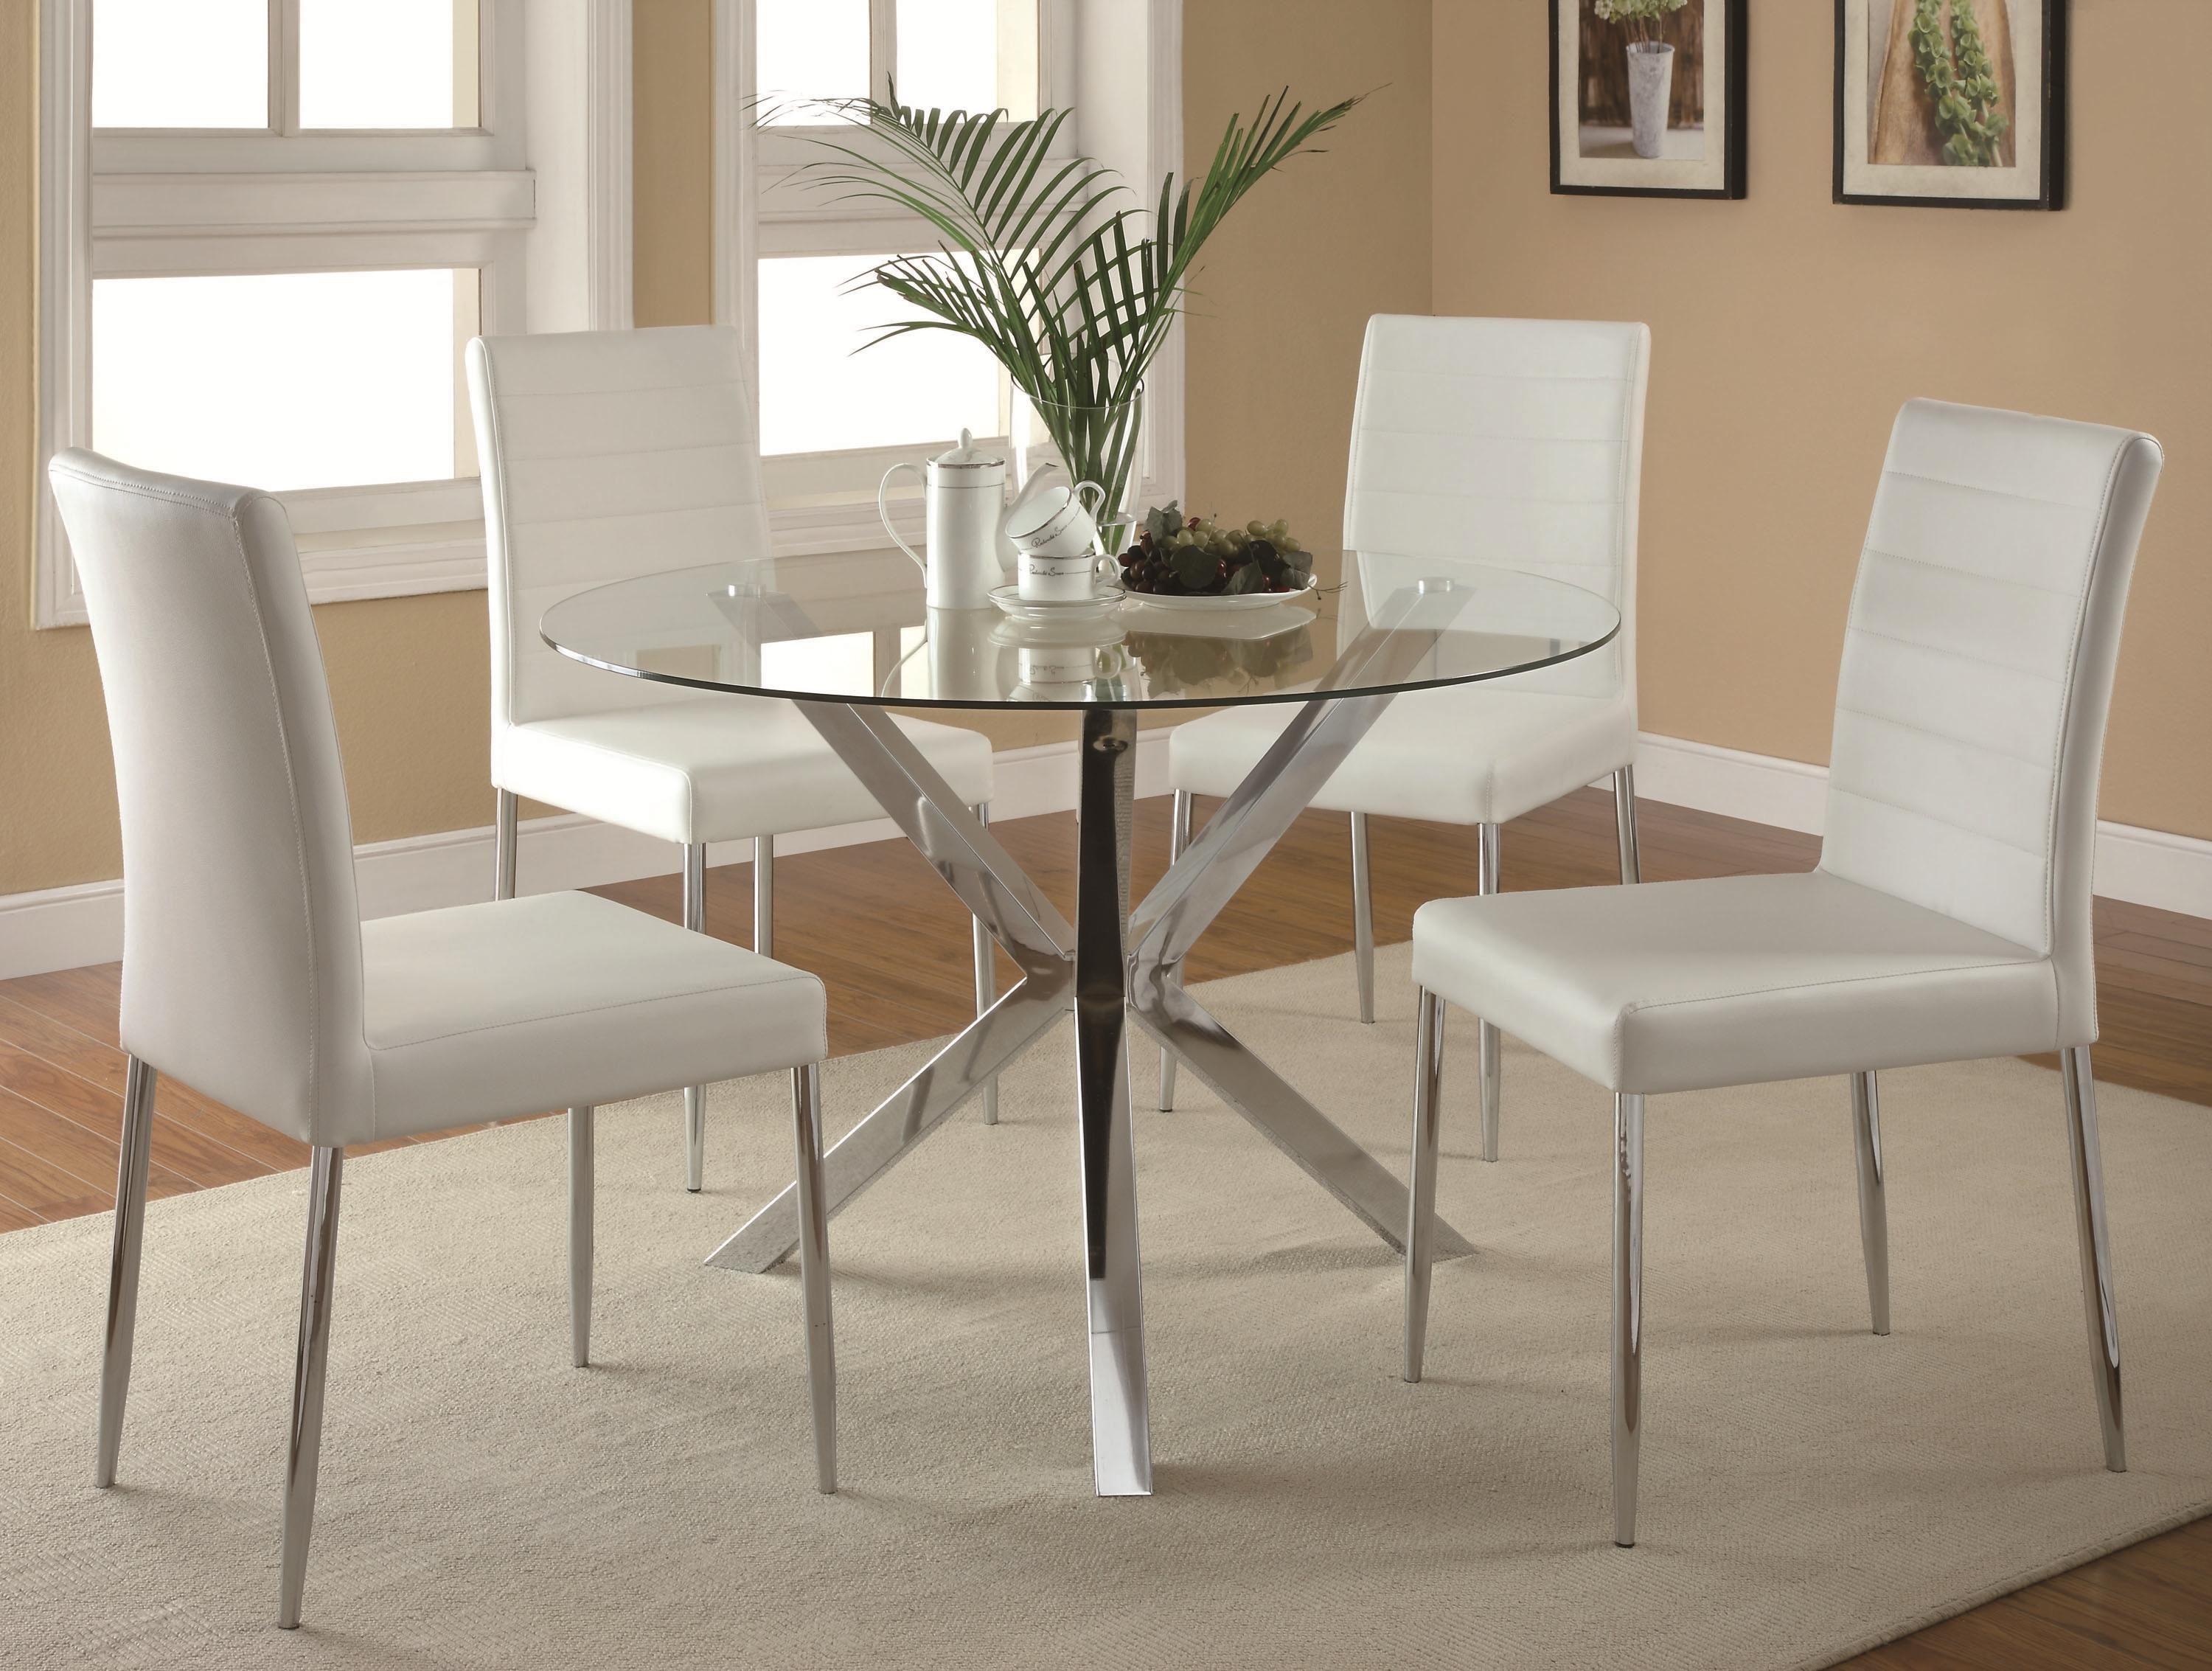 Dining Table With Unique Chrome Base